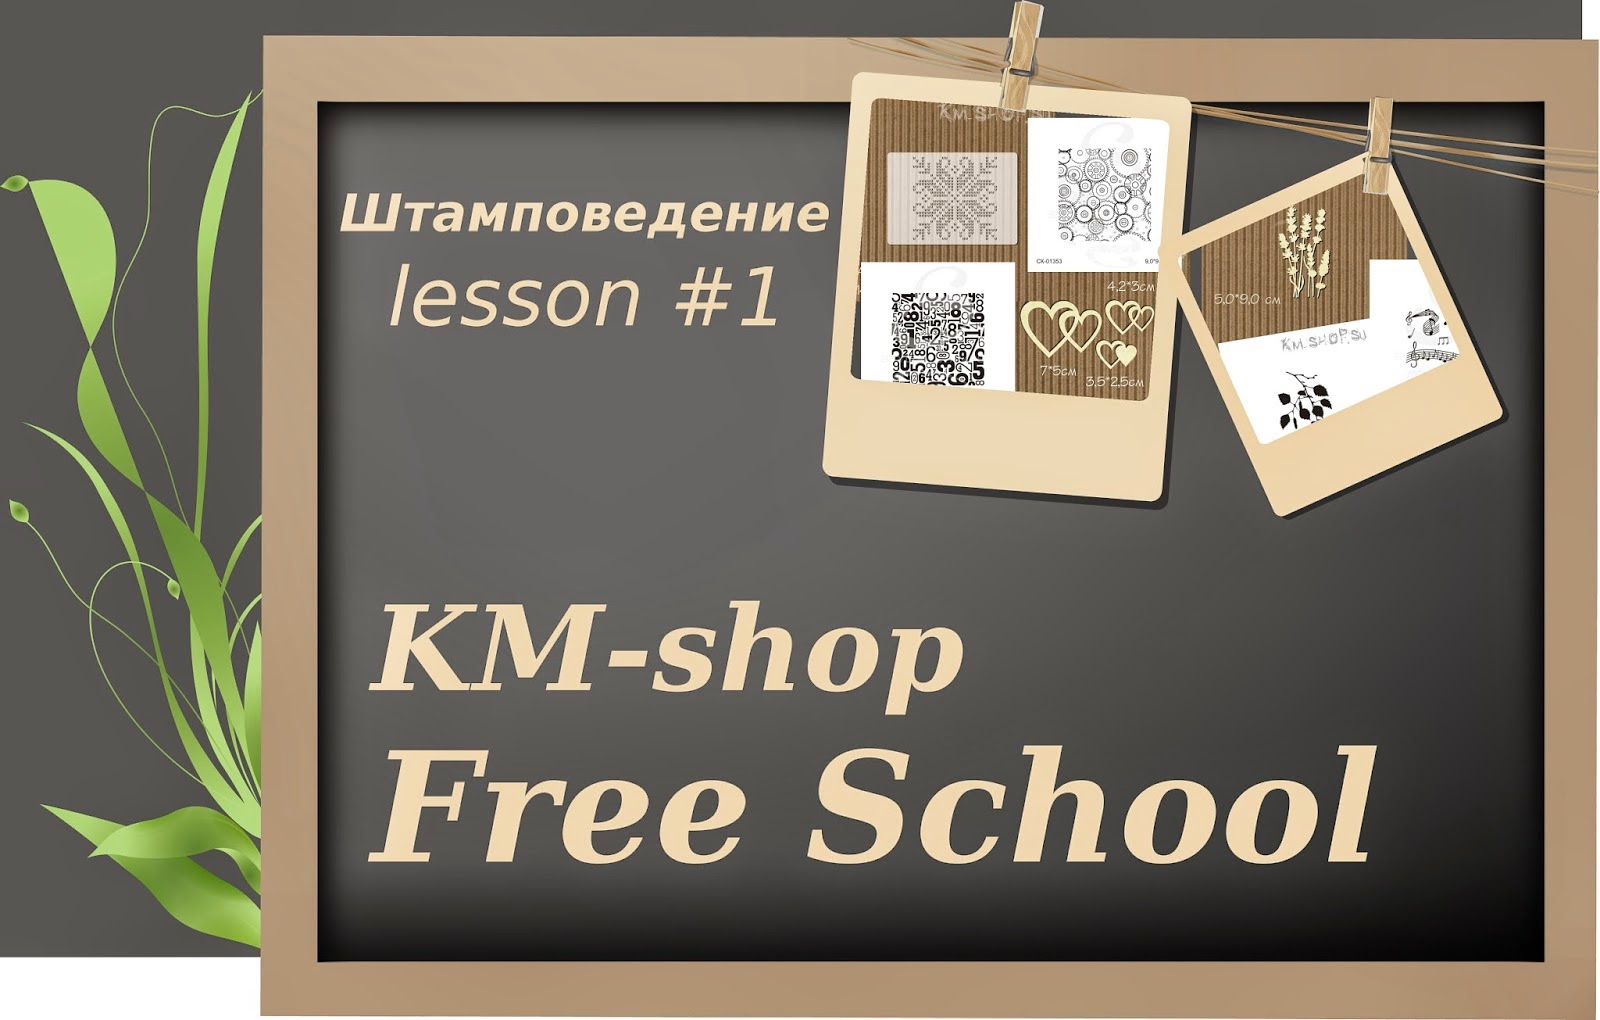 http://challenge-km-shop.blogspot.ru/2015/04/km-shop-free-school-lesson1.html